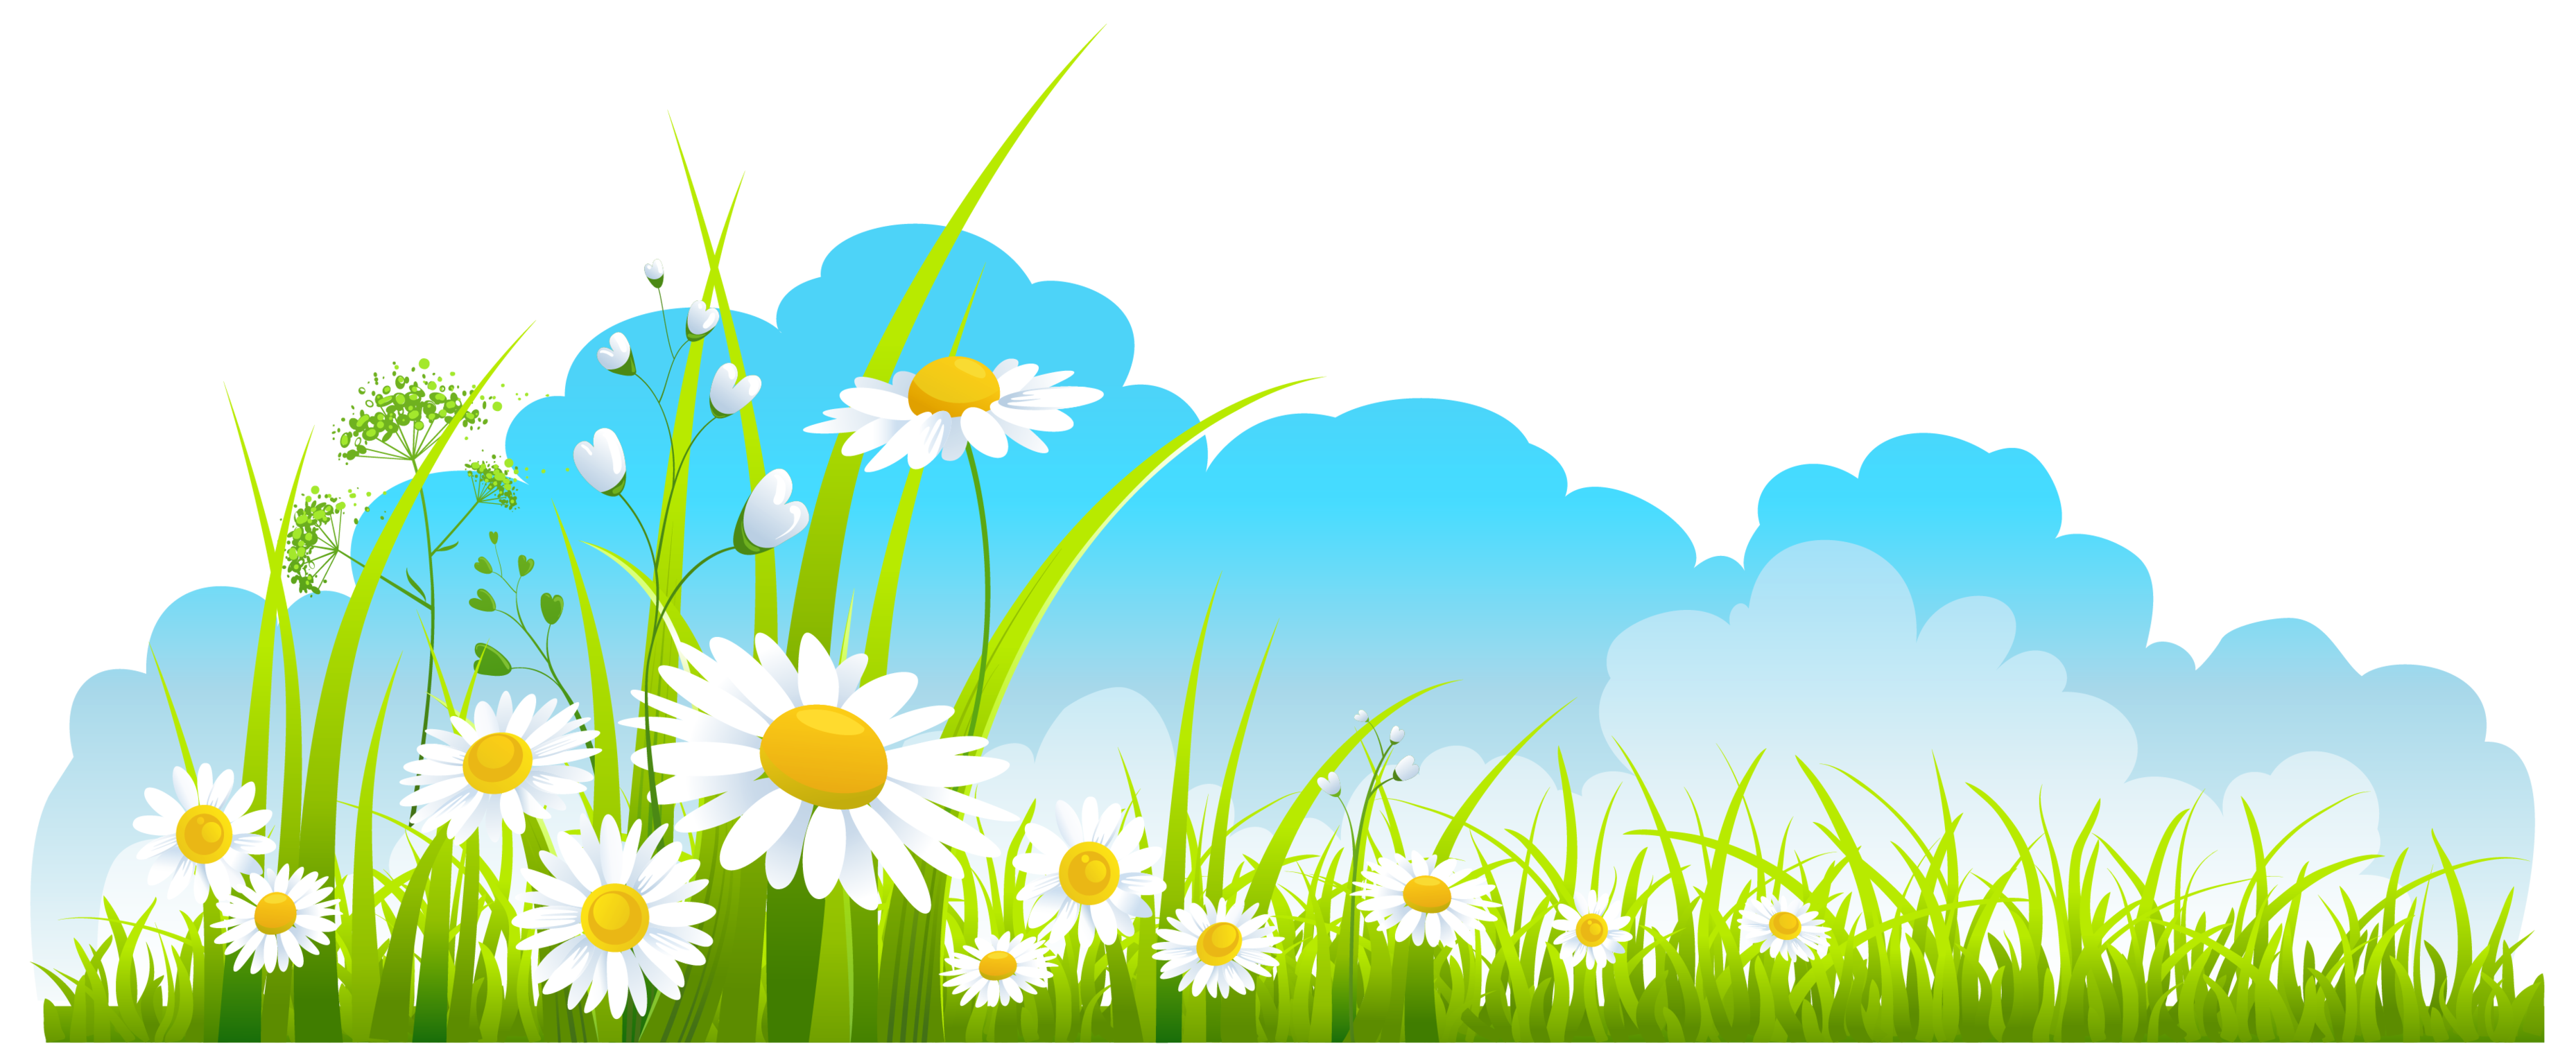 Spring Clipart & Spring Clip Art Images.